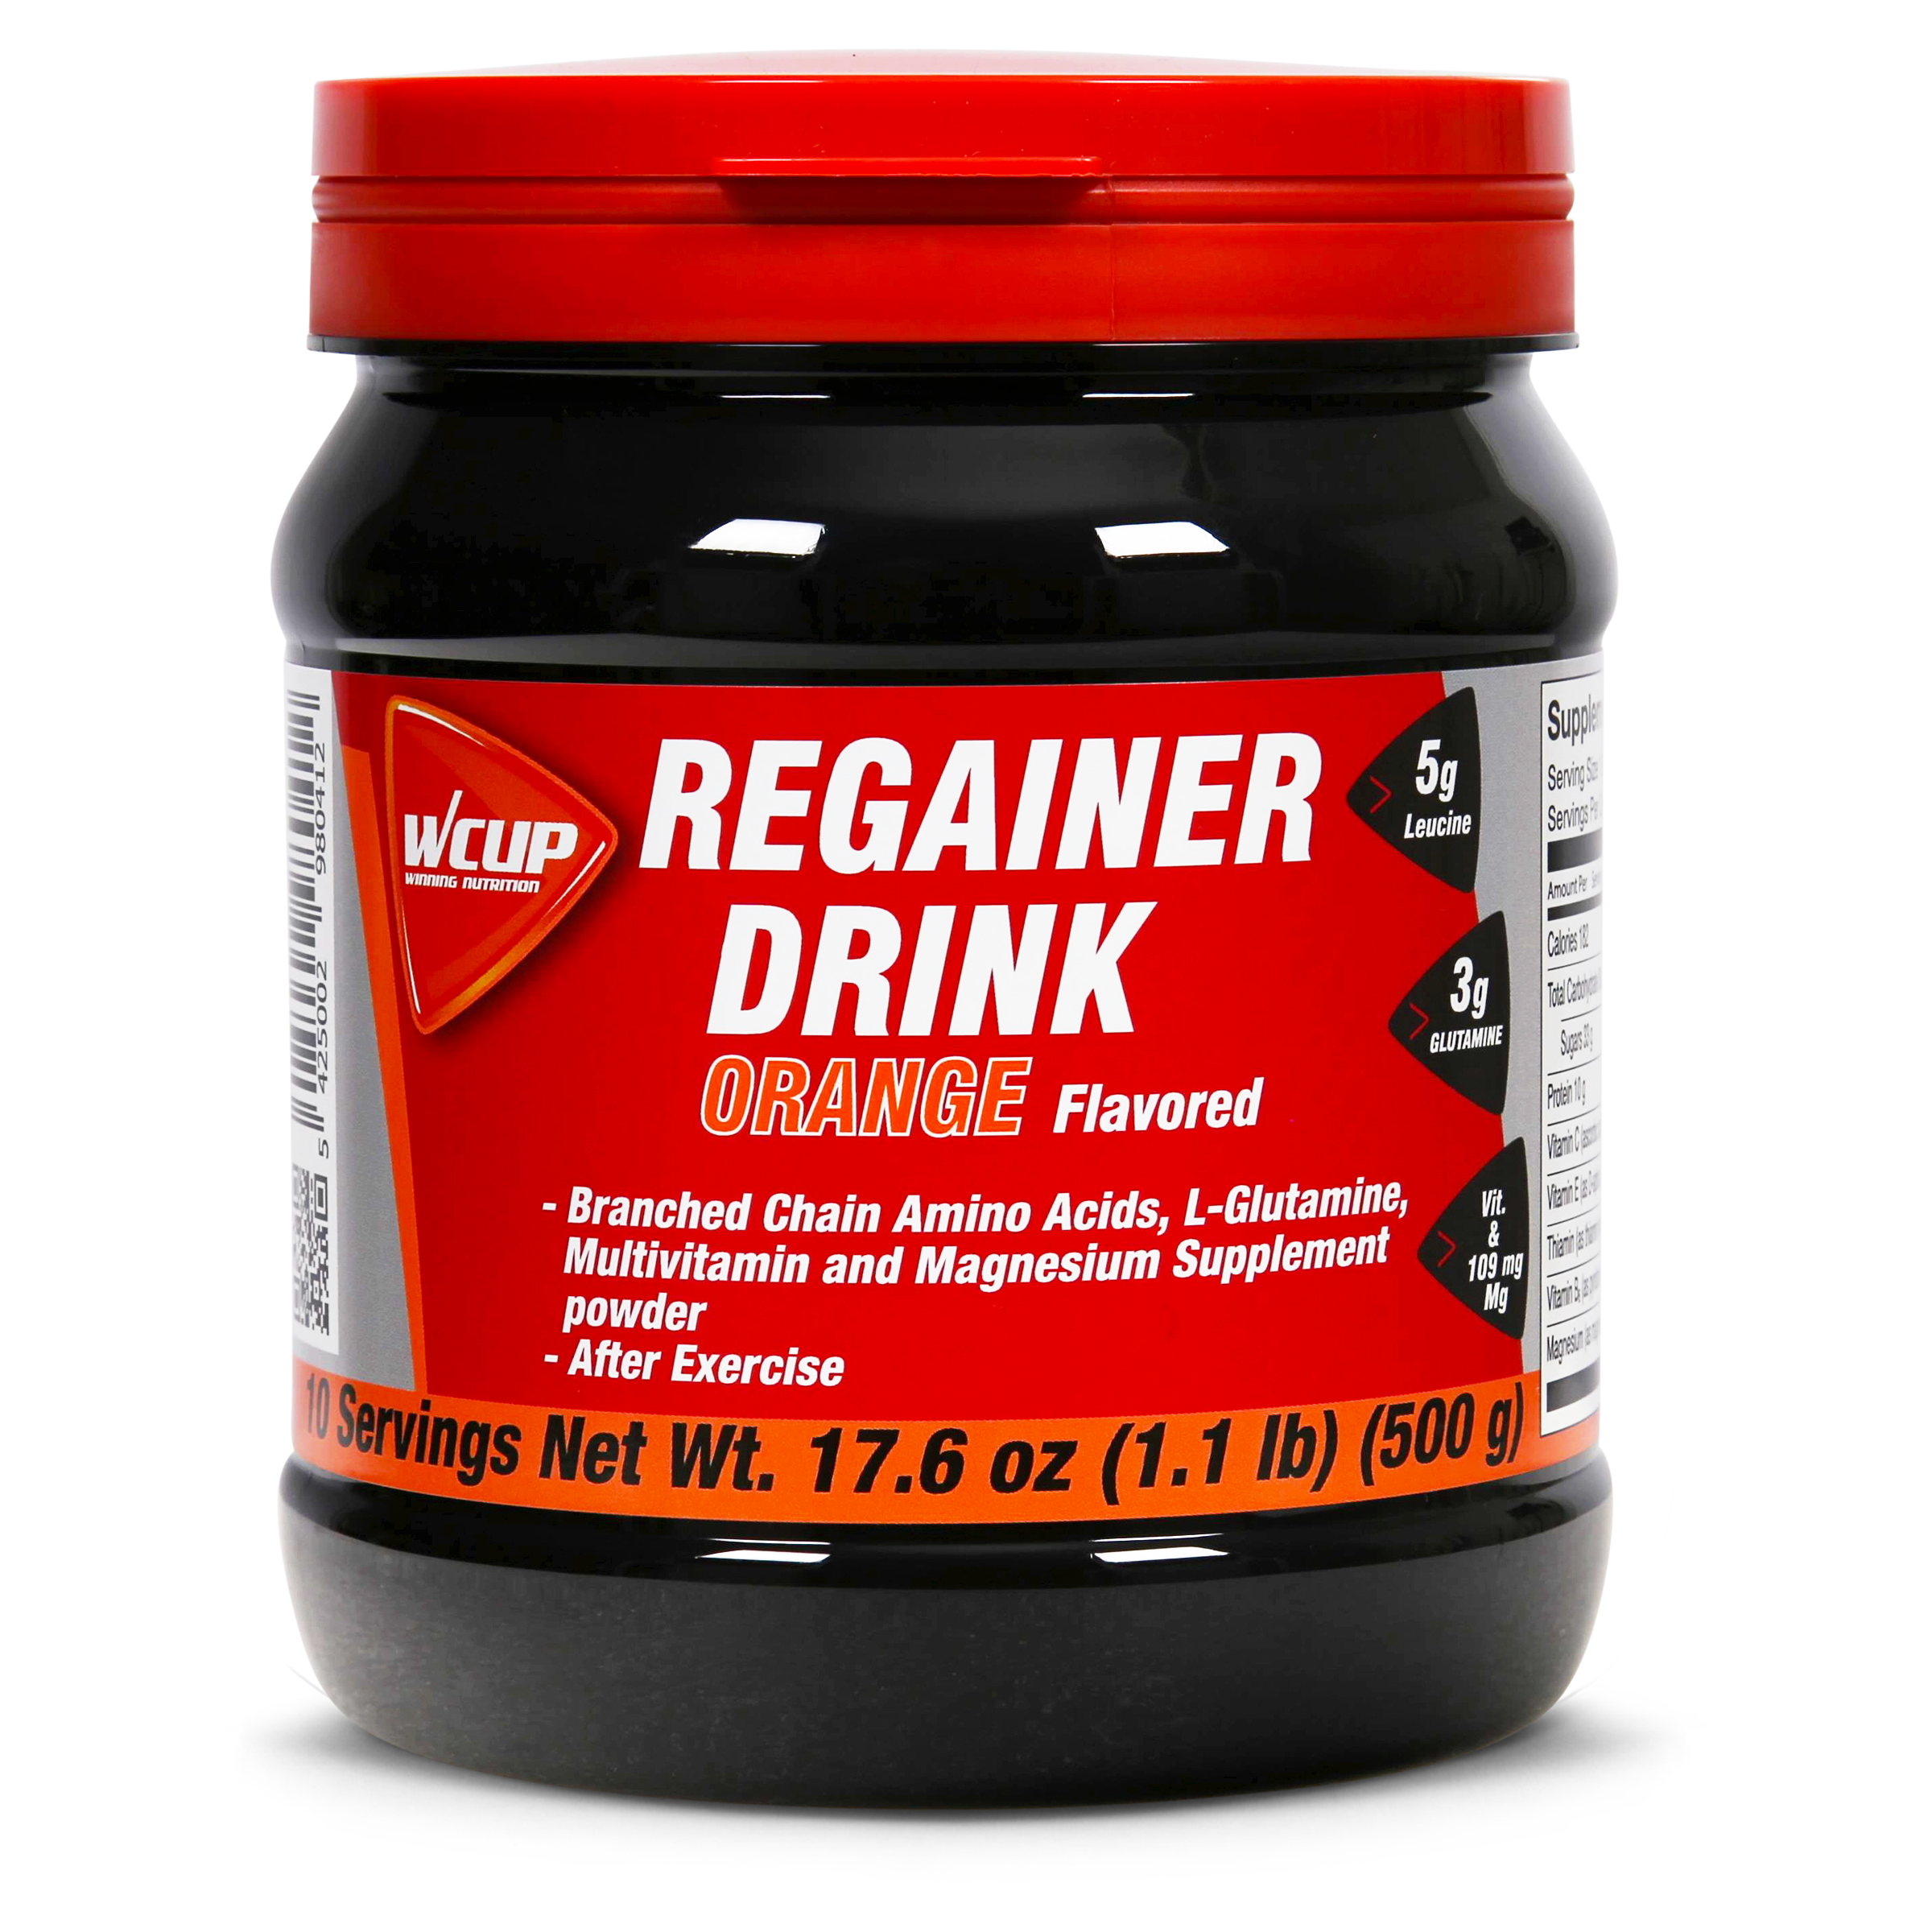 Regainer Drink Orange